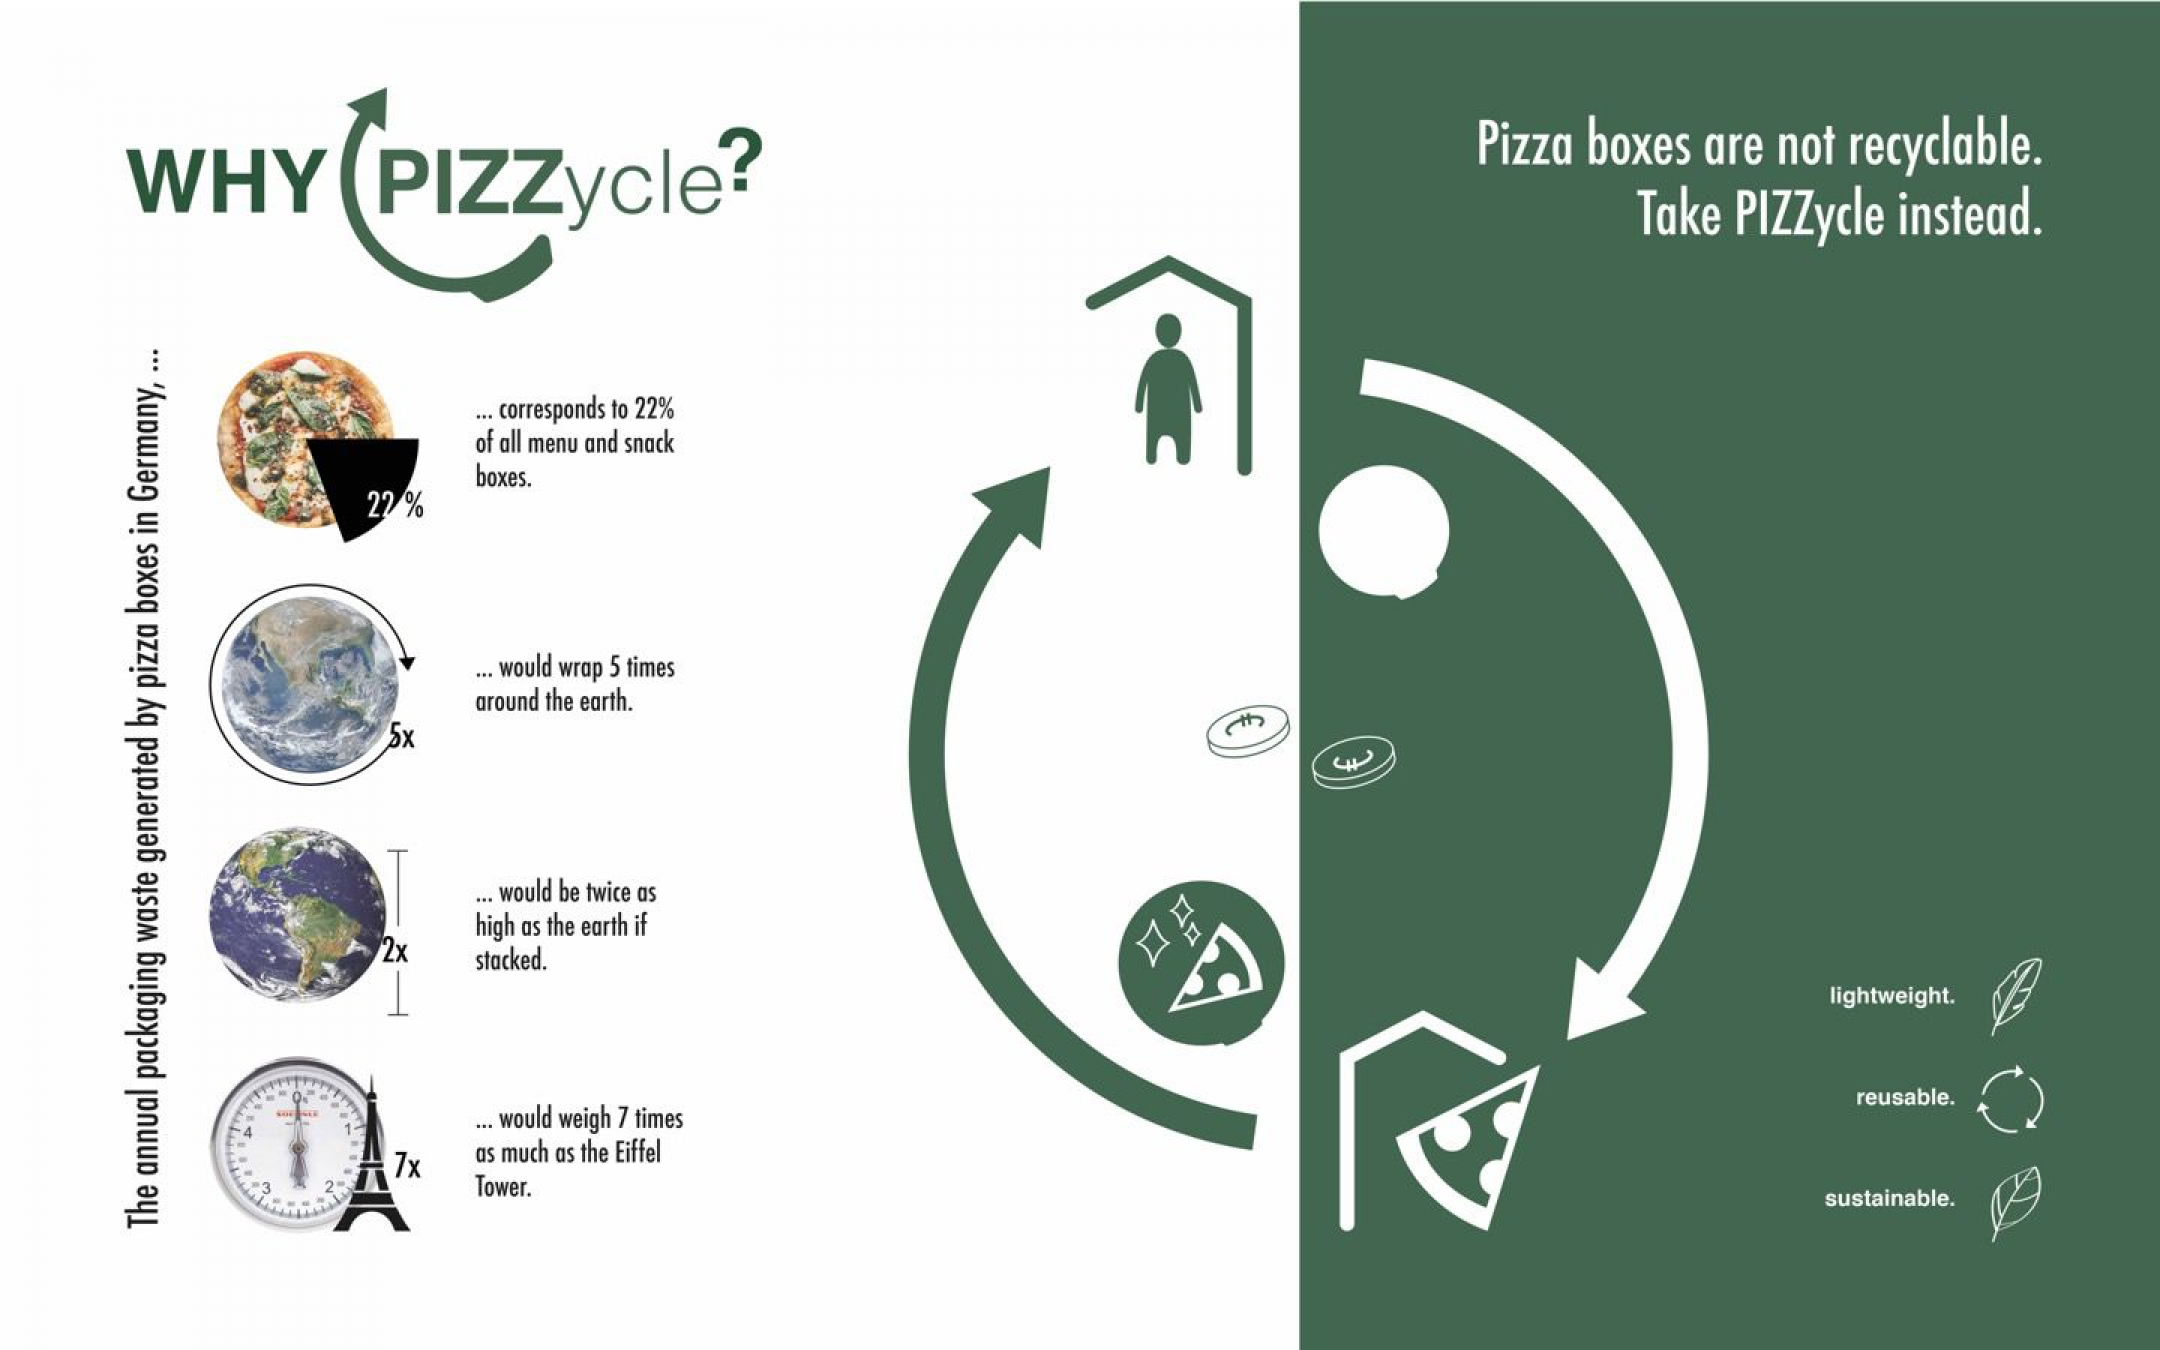 PIZZZycle